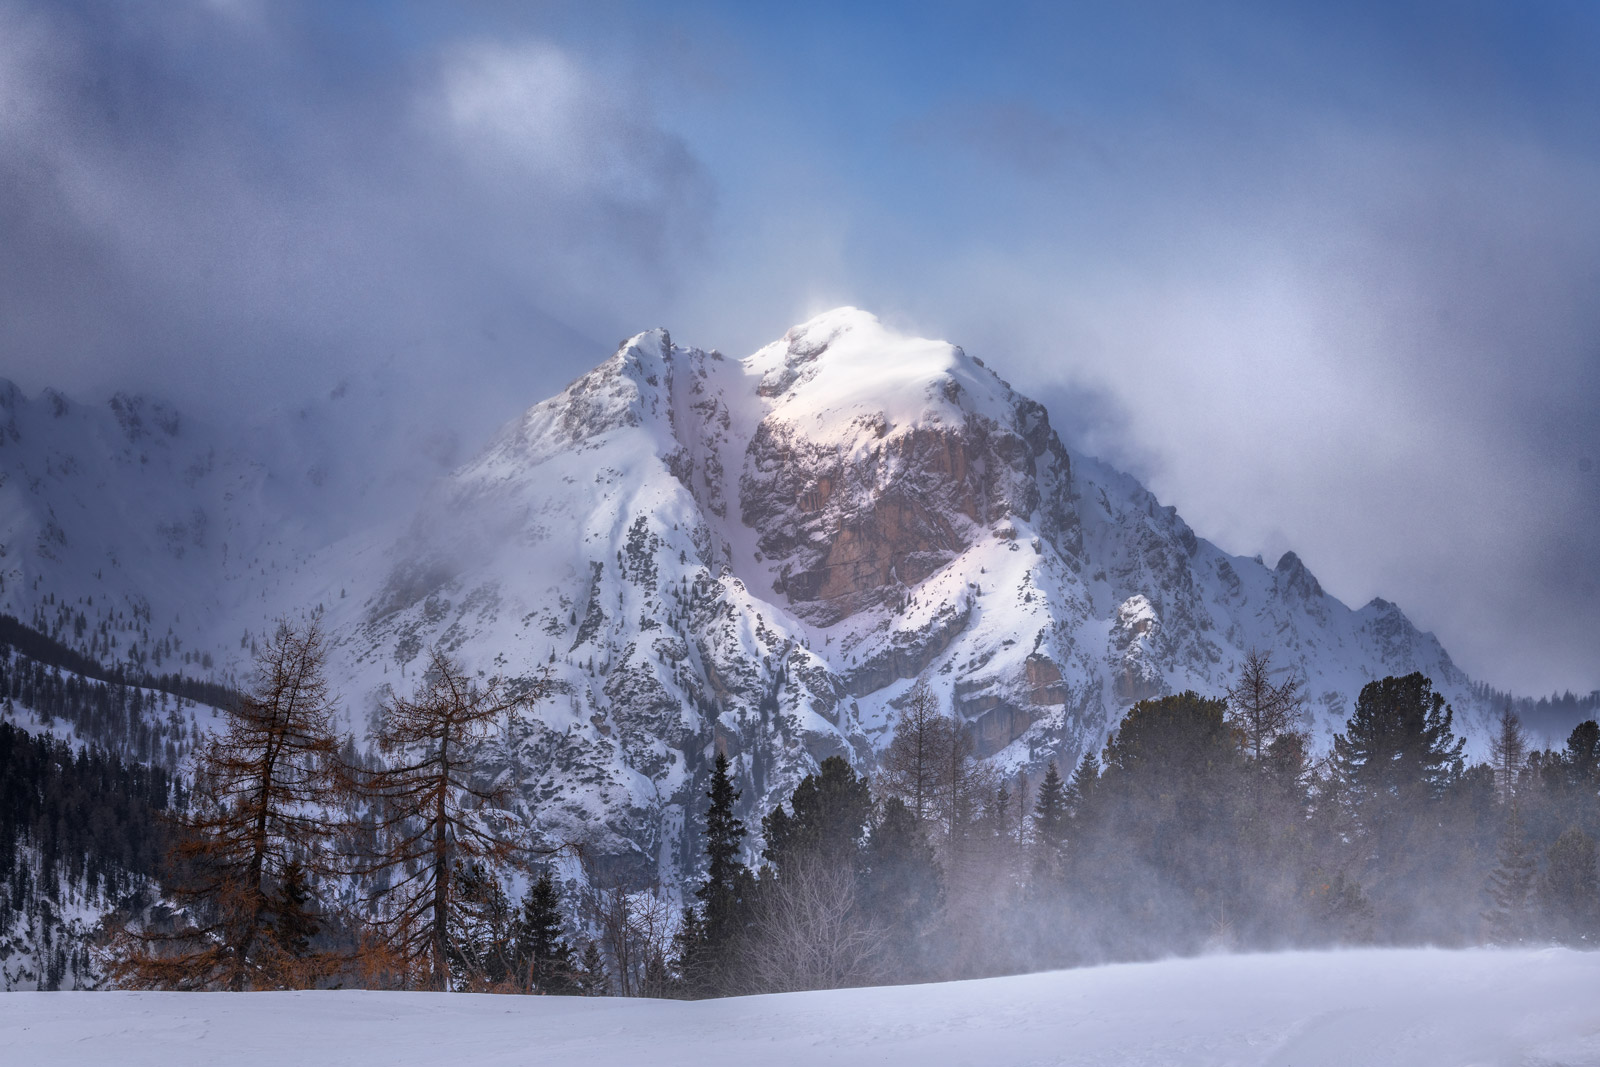 Italy, Dolomites, Mountains, Snow, Winds, limited edition, photograph, fine art, landscape, photo